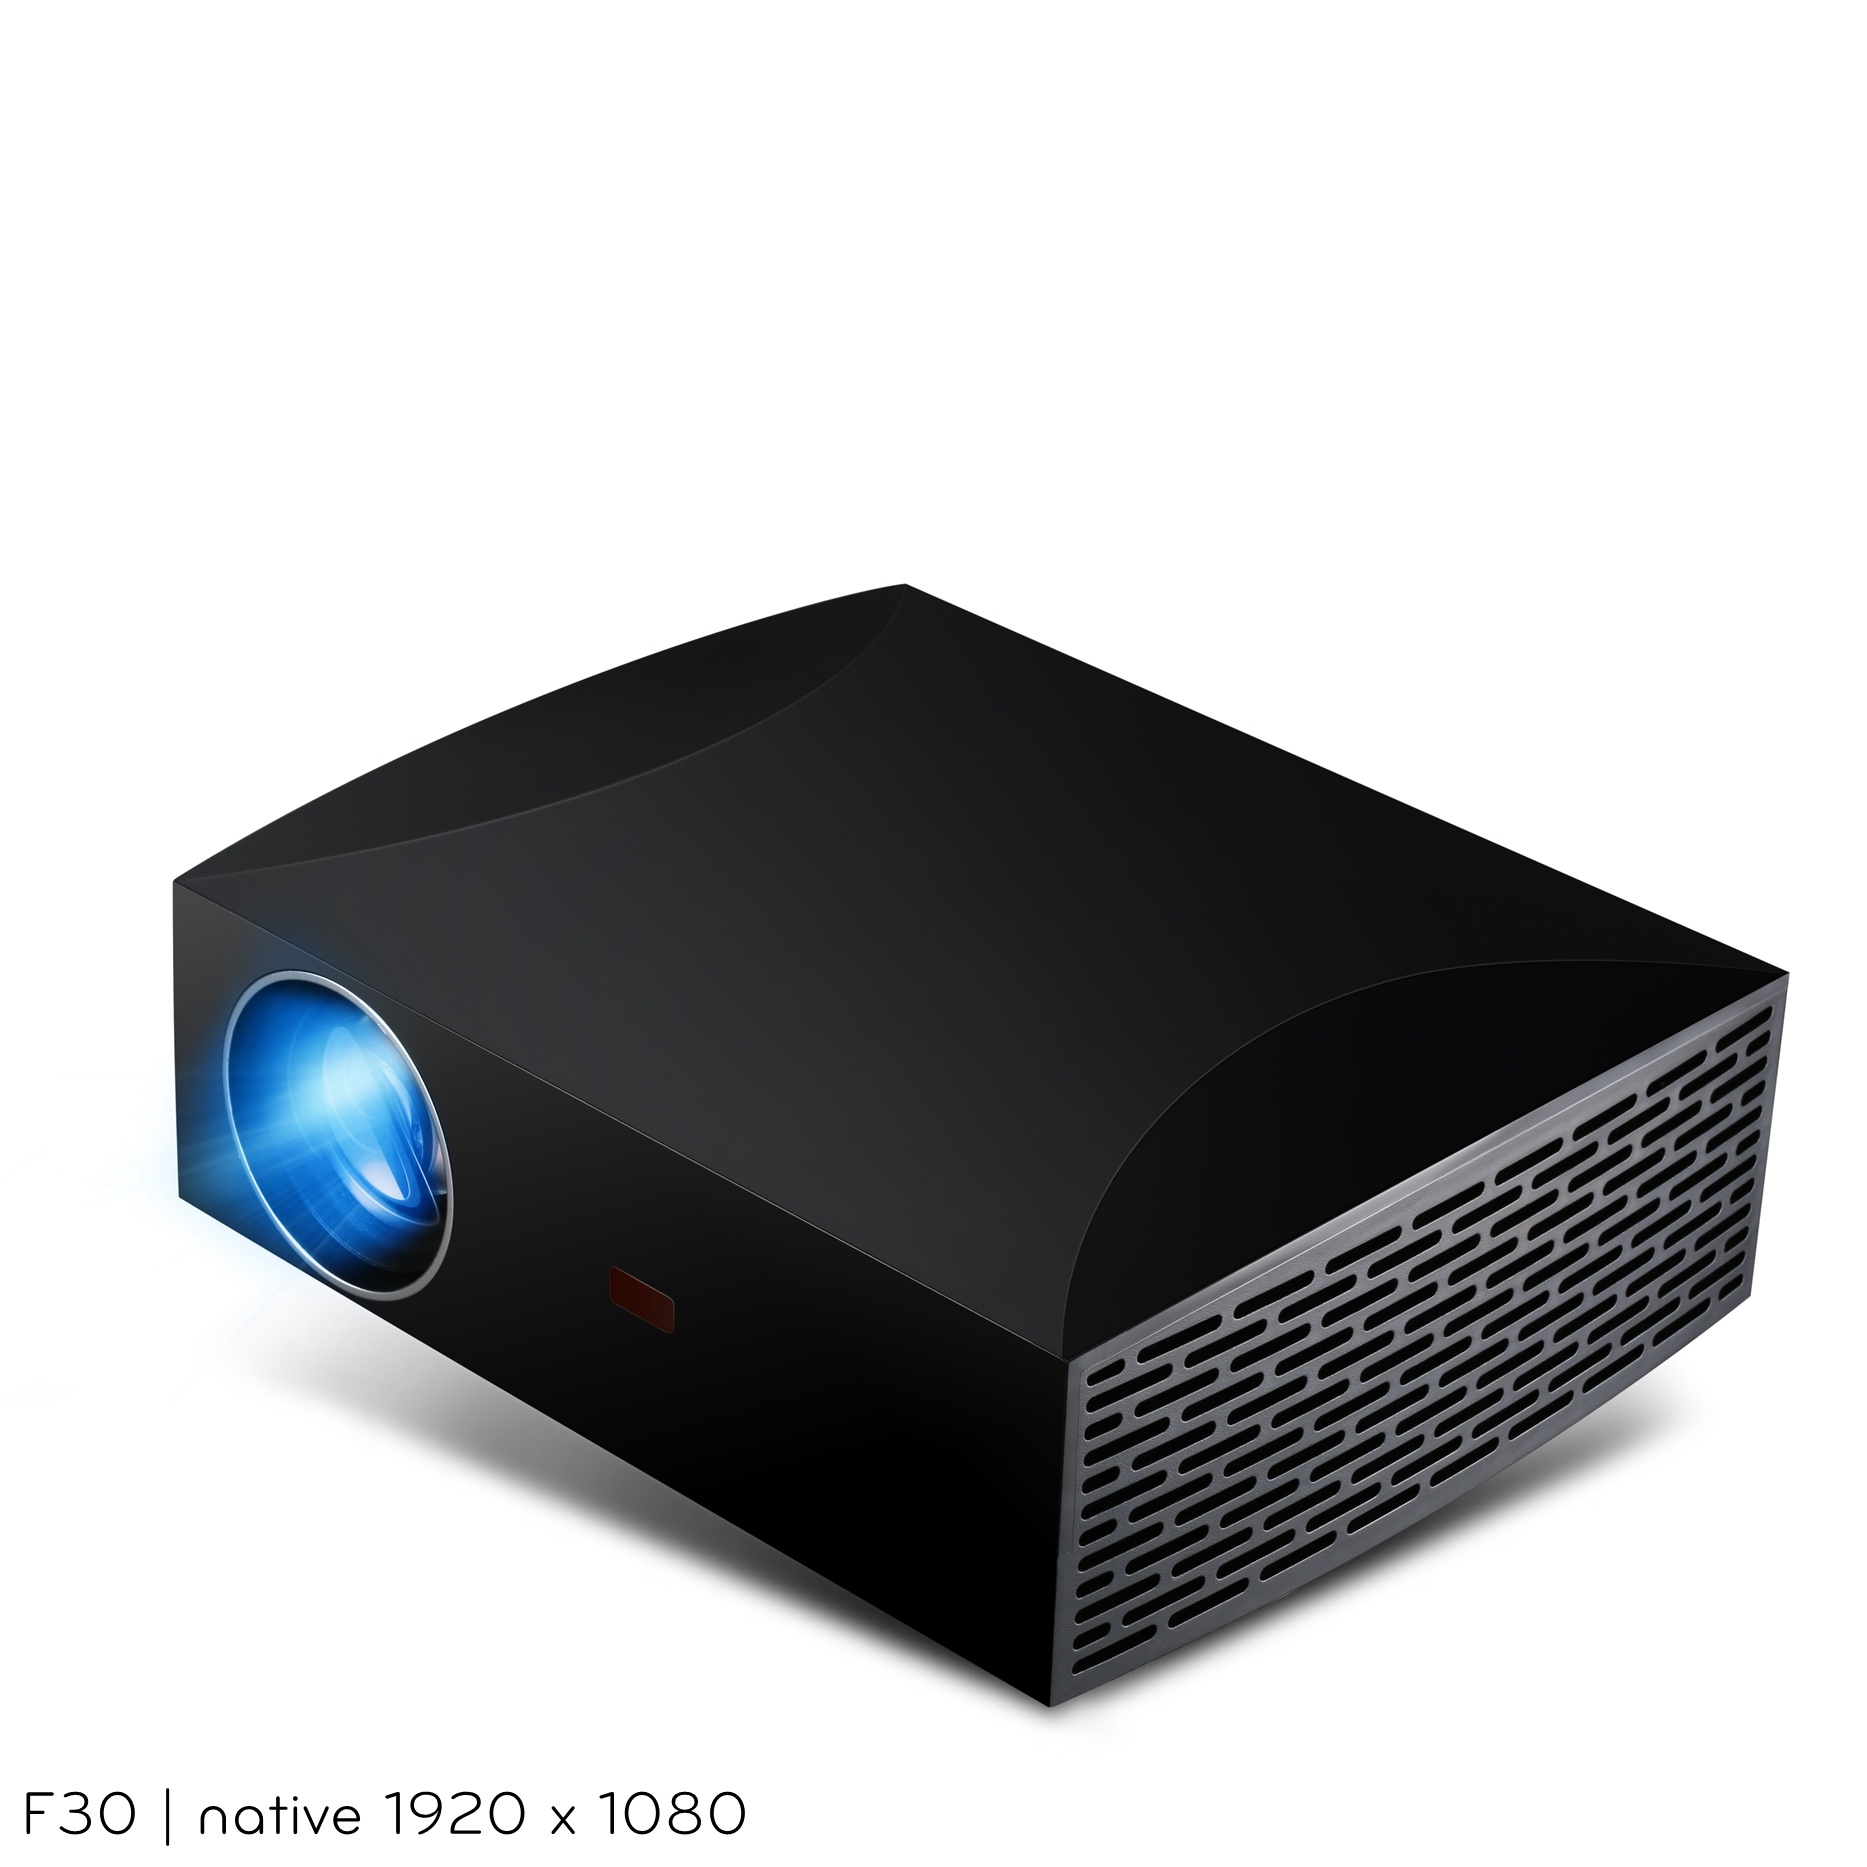 GIGXON- F30 LCD Projector WIFI Portable Projector 4200 Lumens FHD 1920 x 1080P Video Projector For Home Office Home Theater